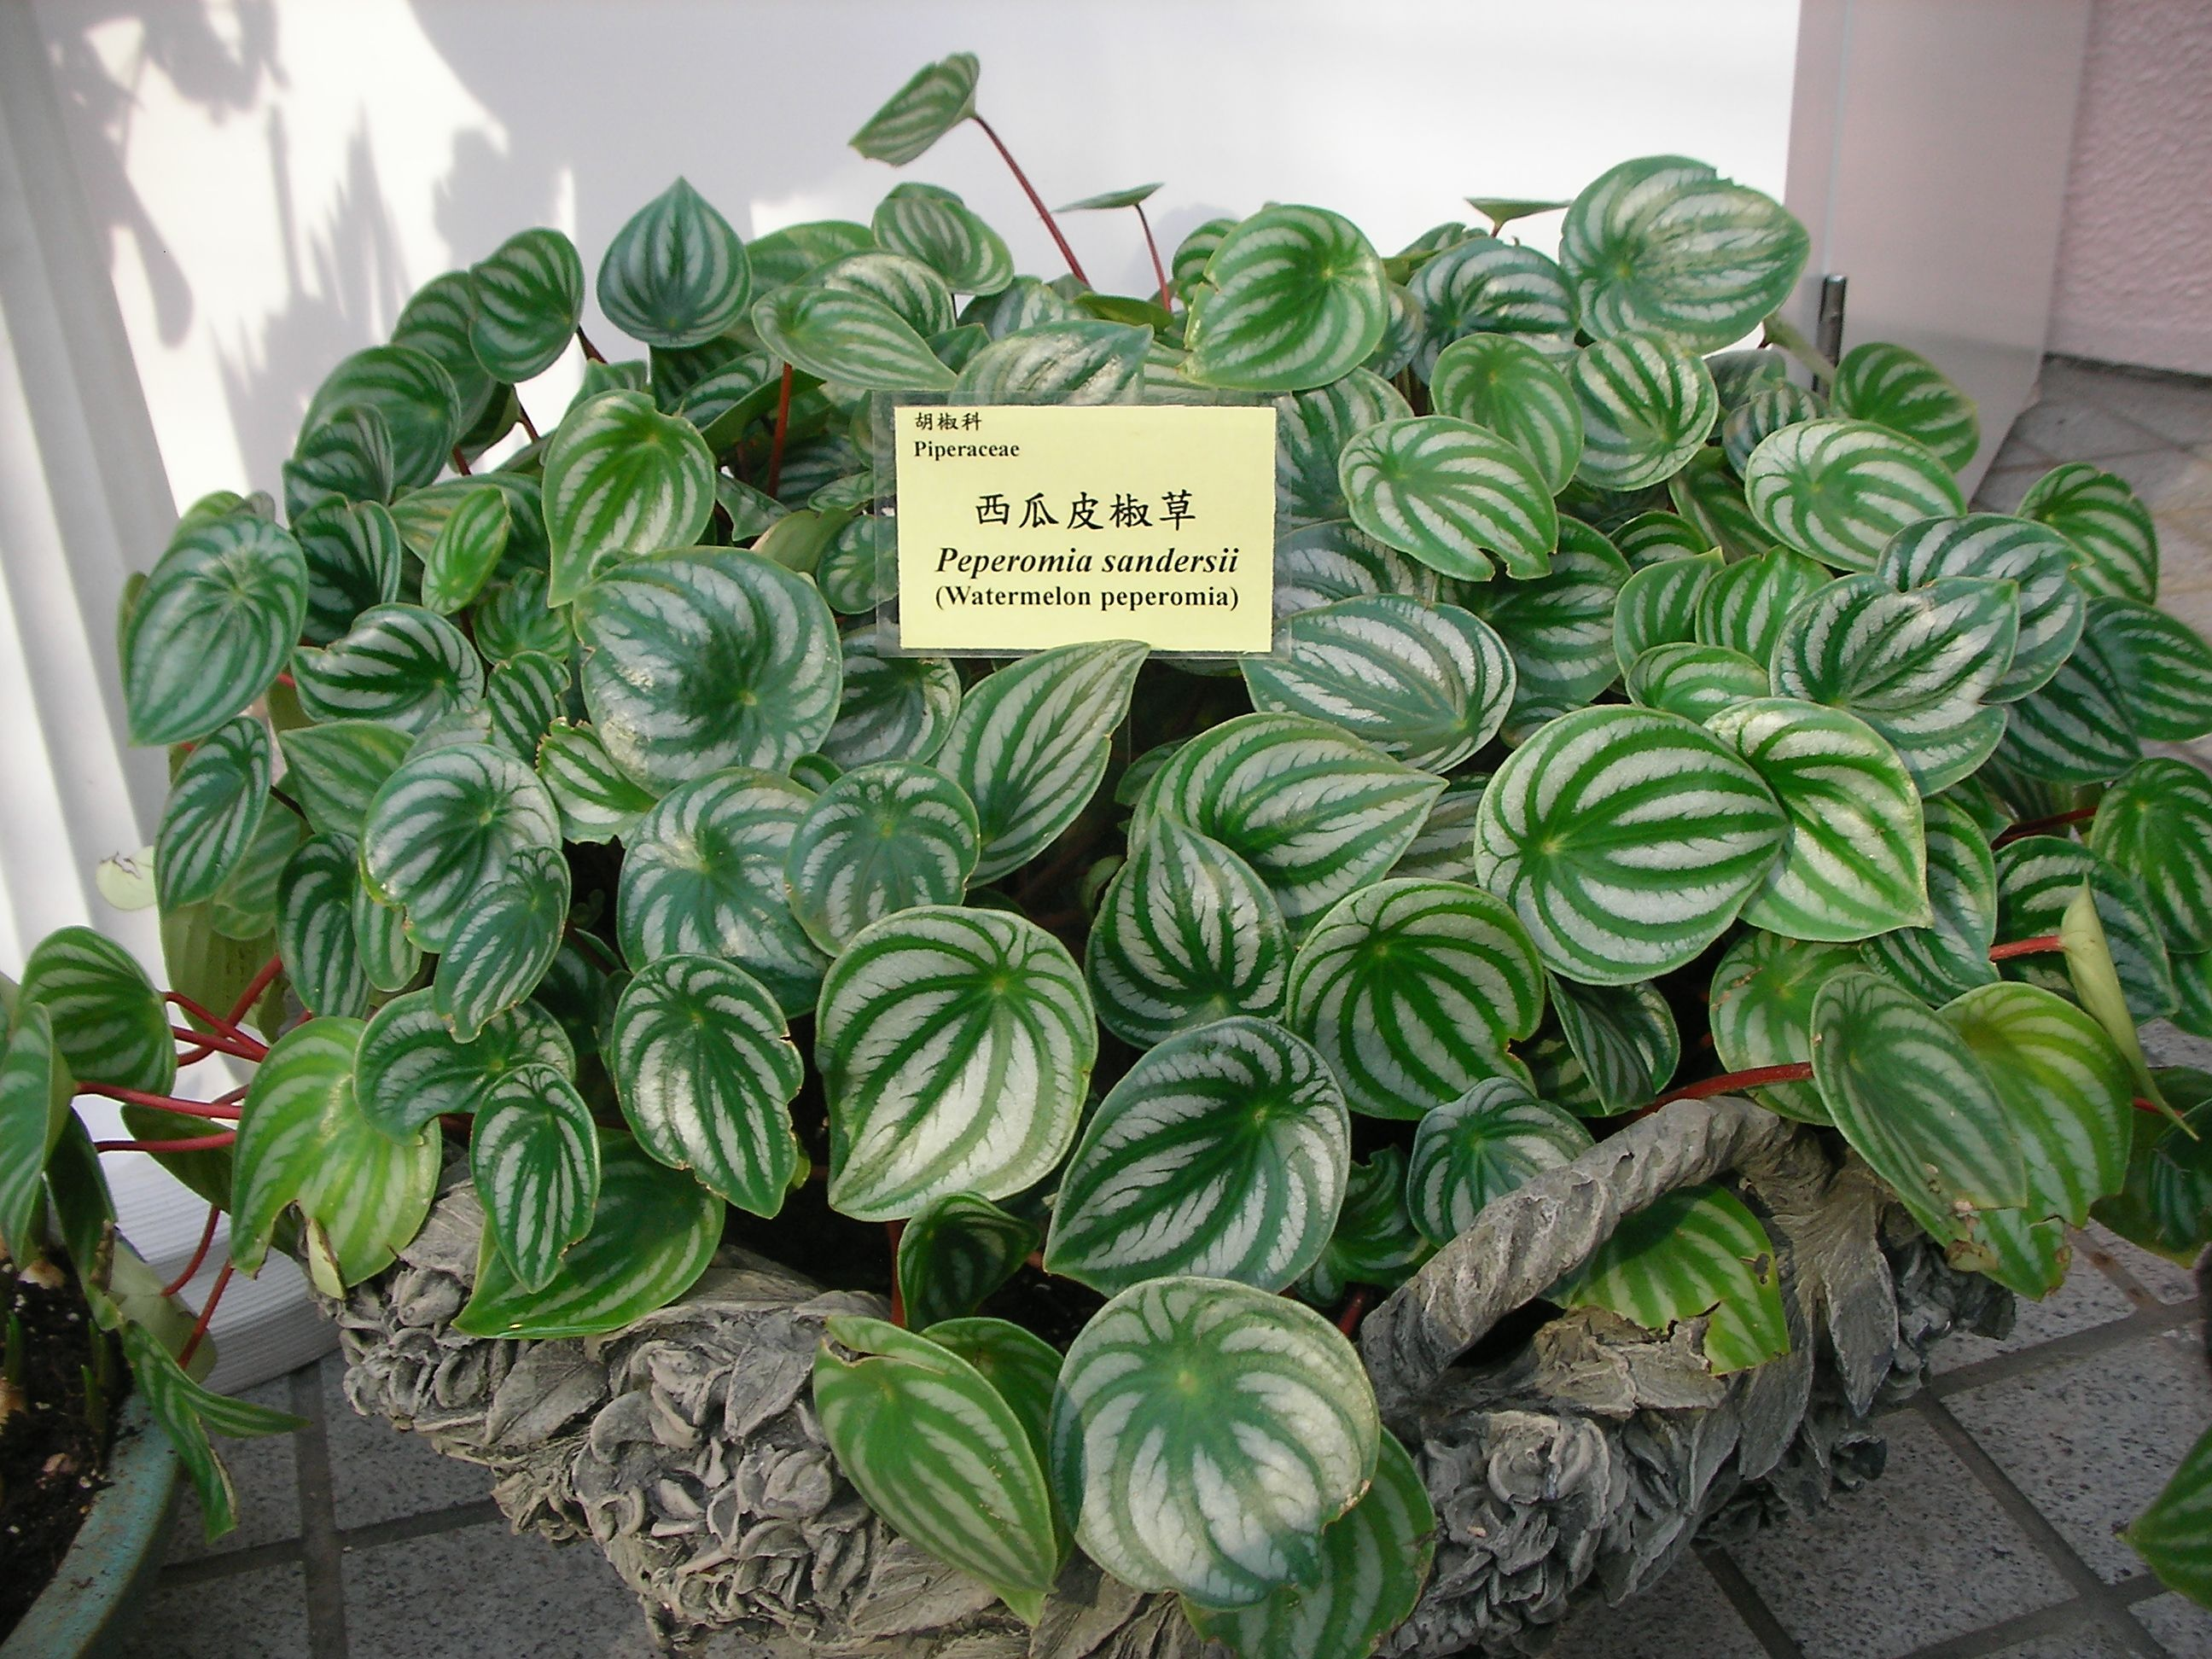 Peperomia Sandersii (P Argyreia Looks Similar) Also Known As Watermellon